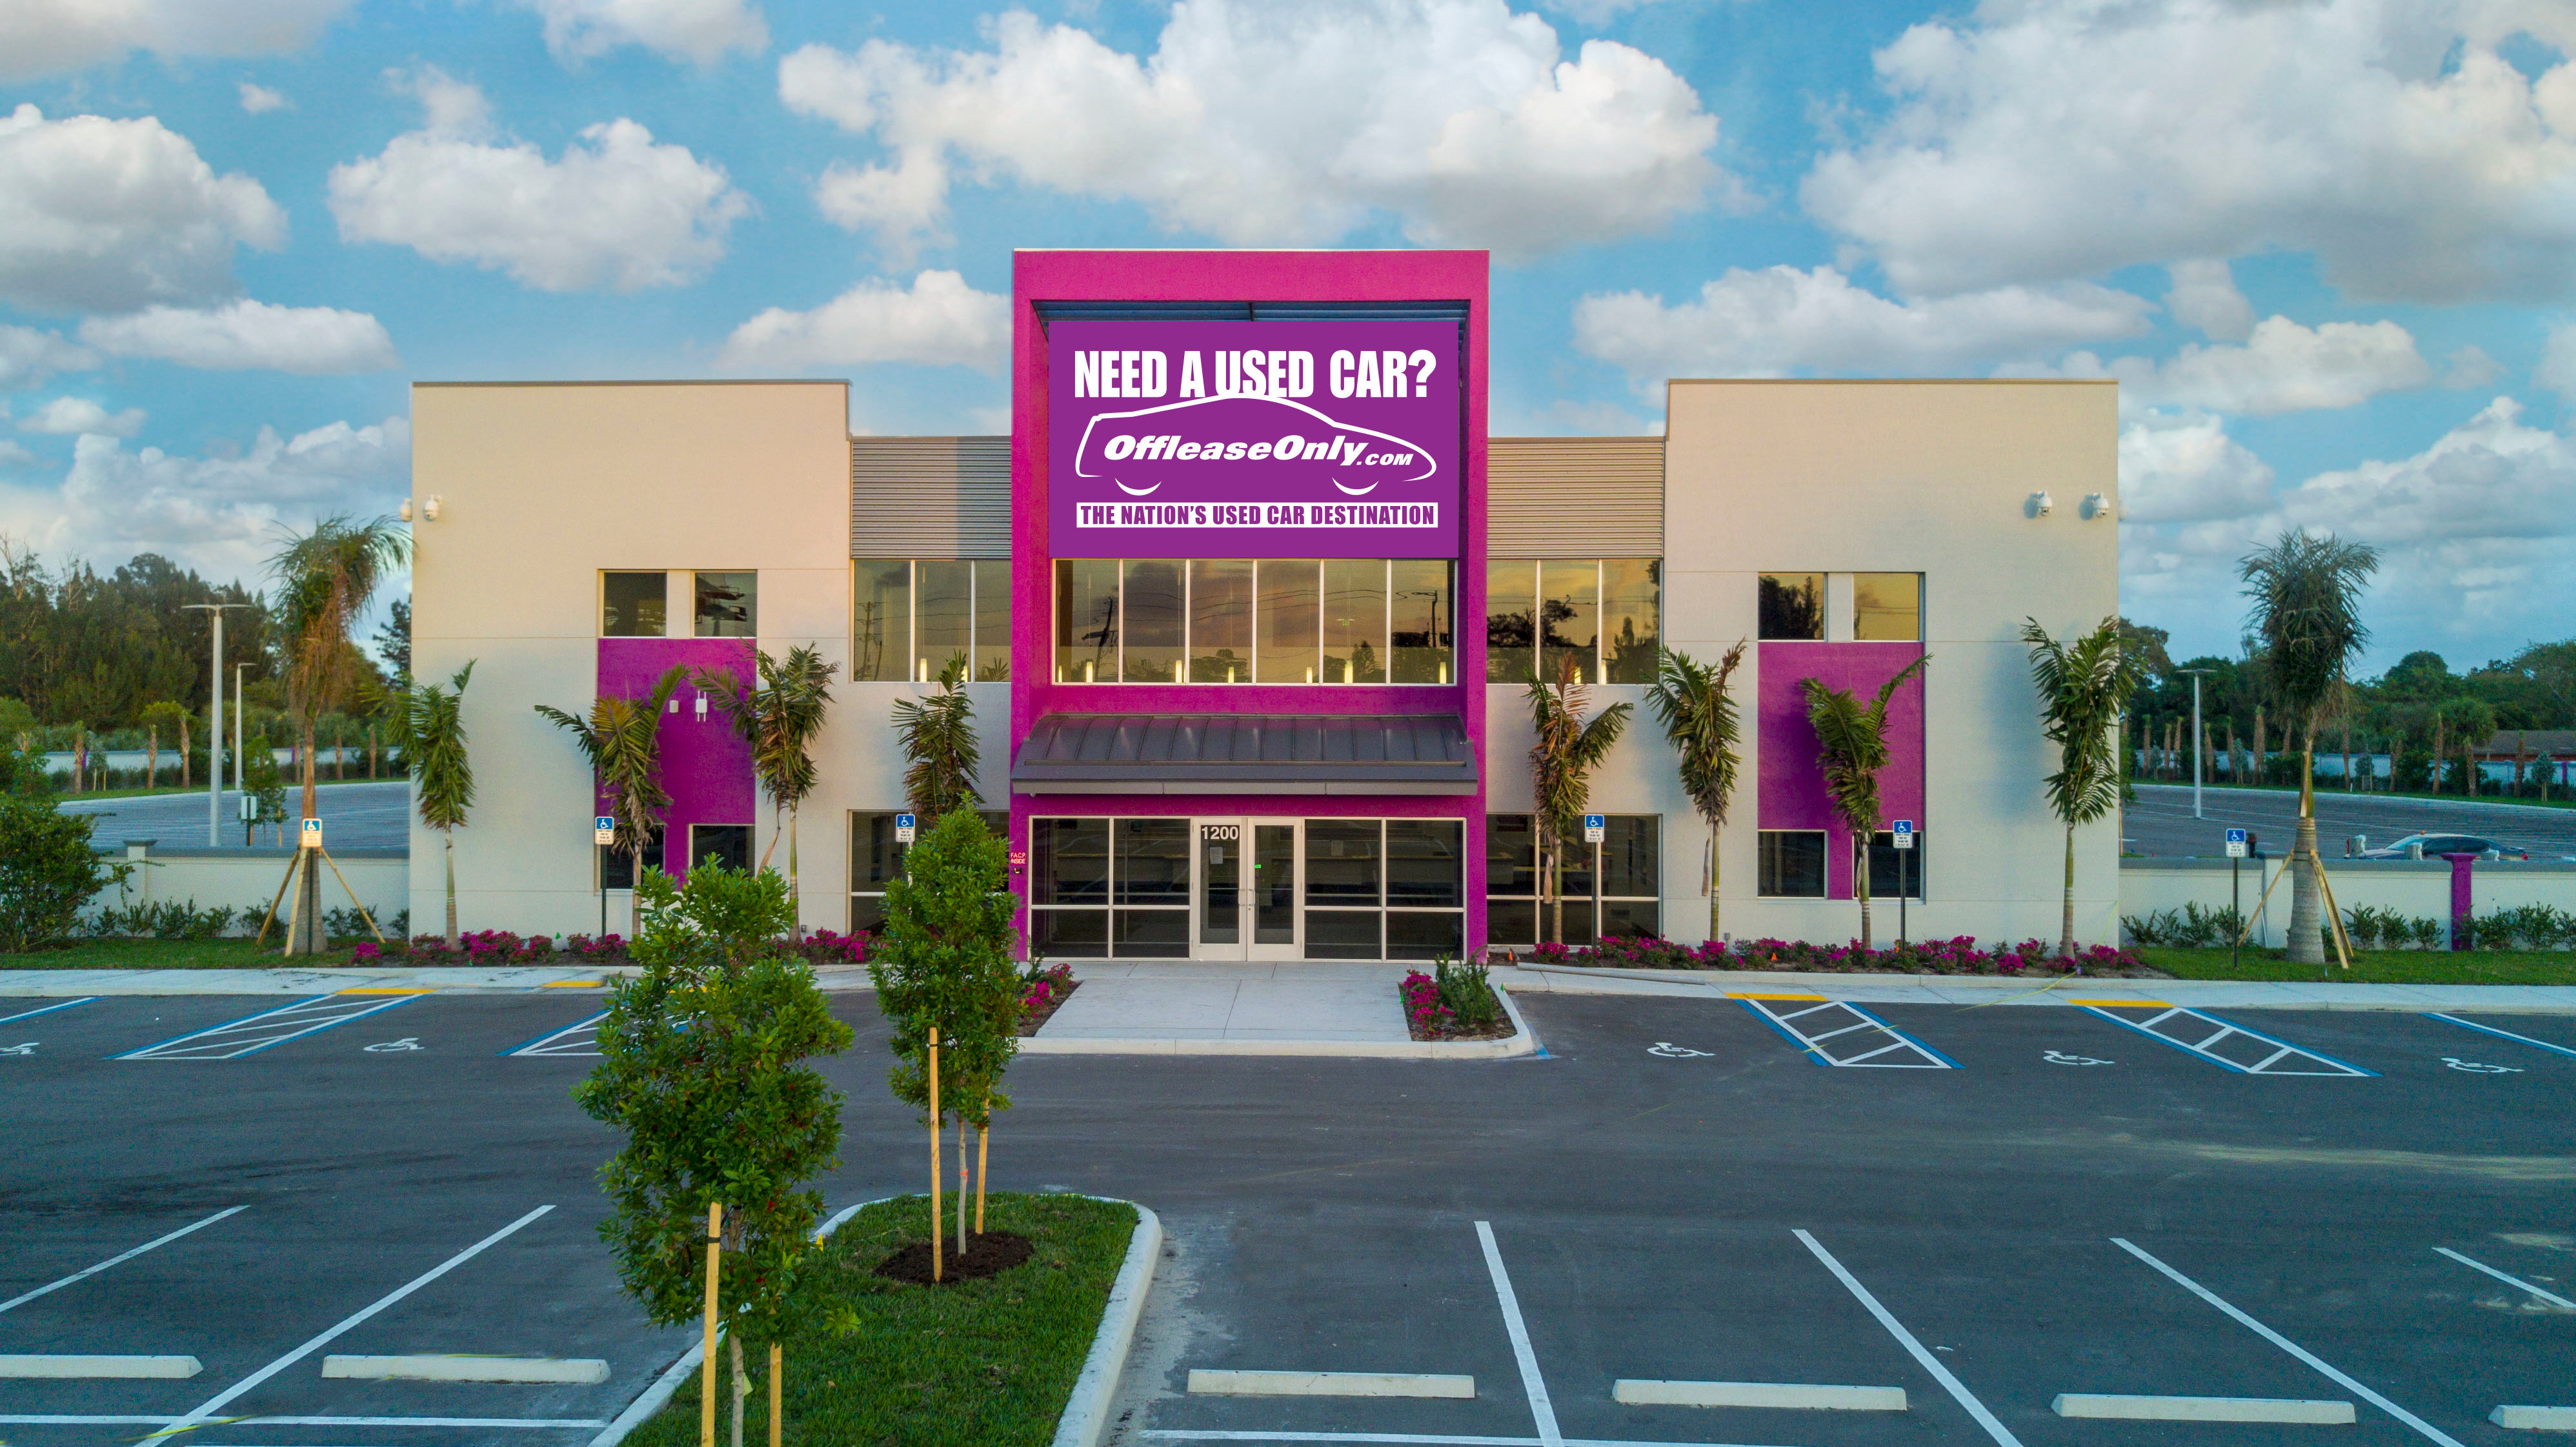 Off Lease West Palm Beach >> Off Lease Only In West Palm Beach Florida 33406 561 222 2277